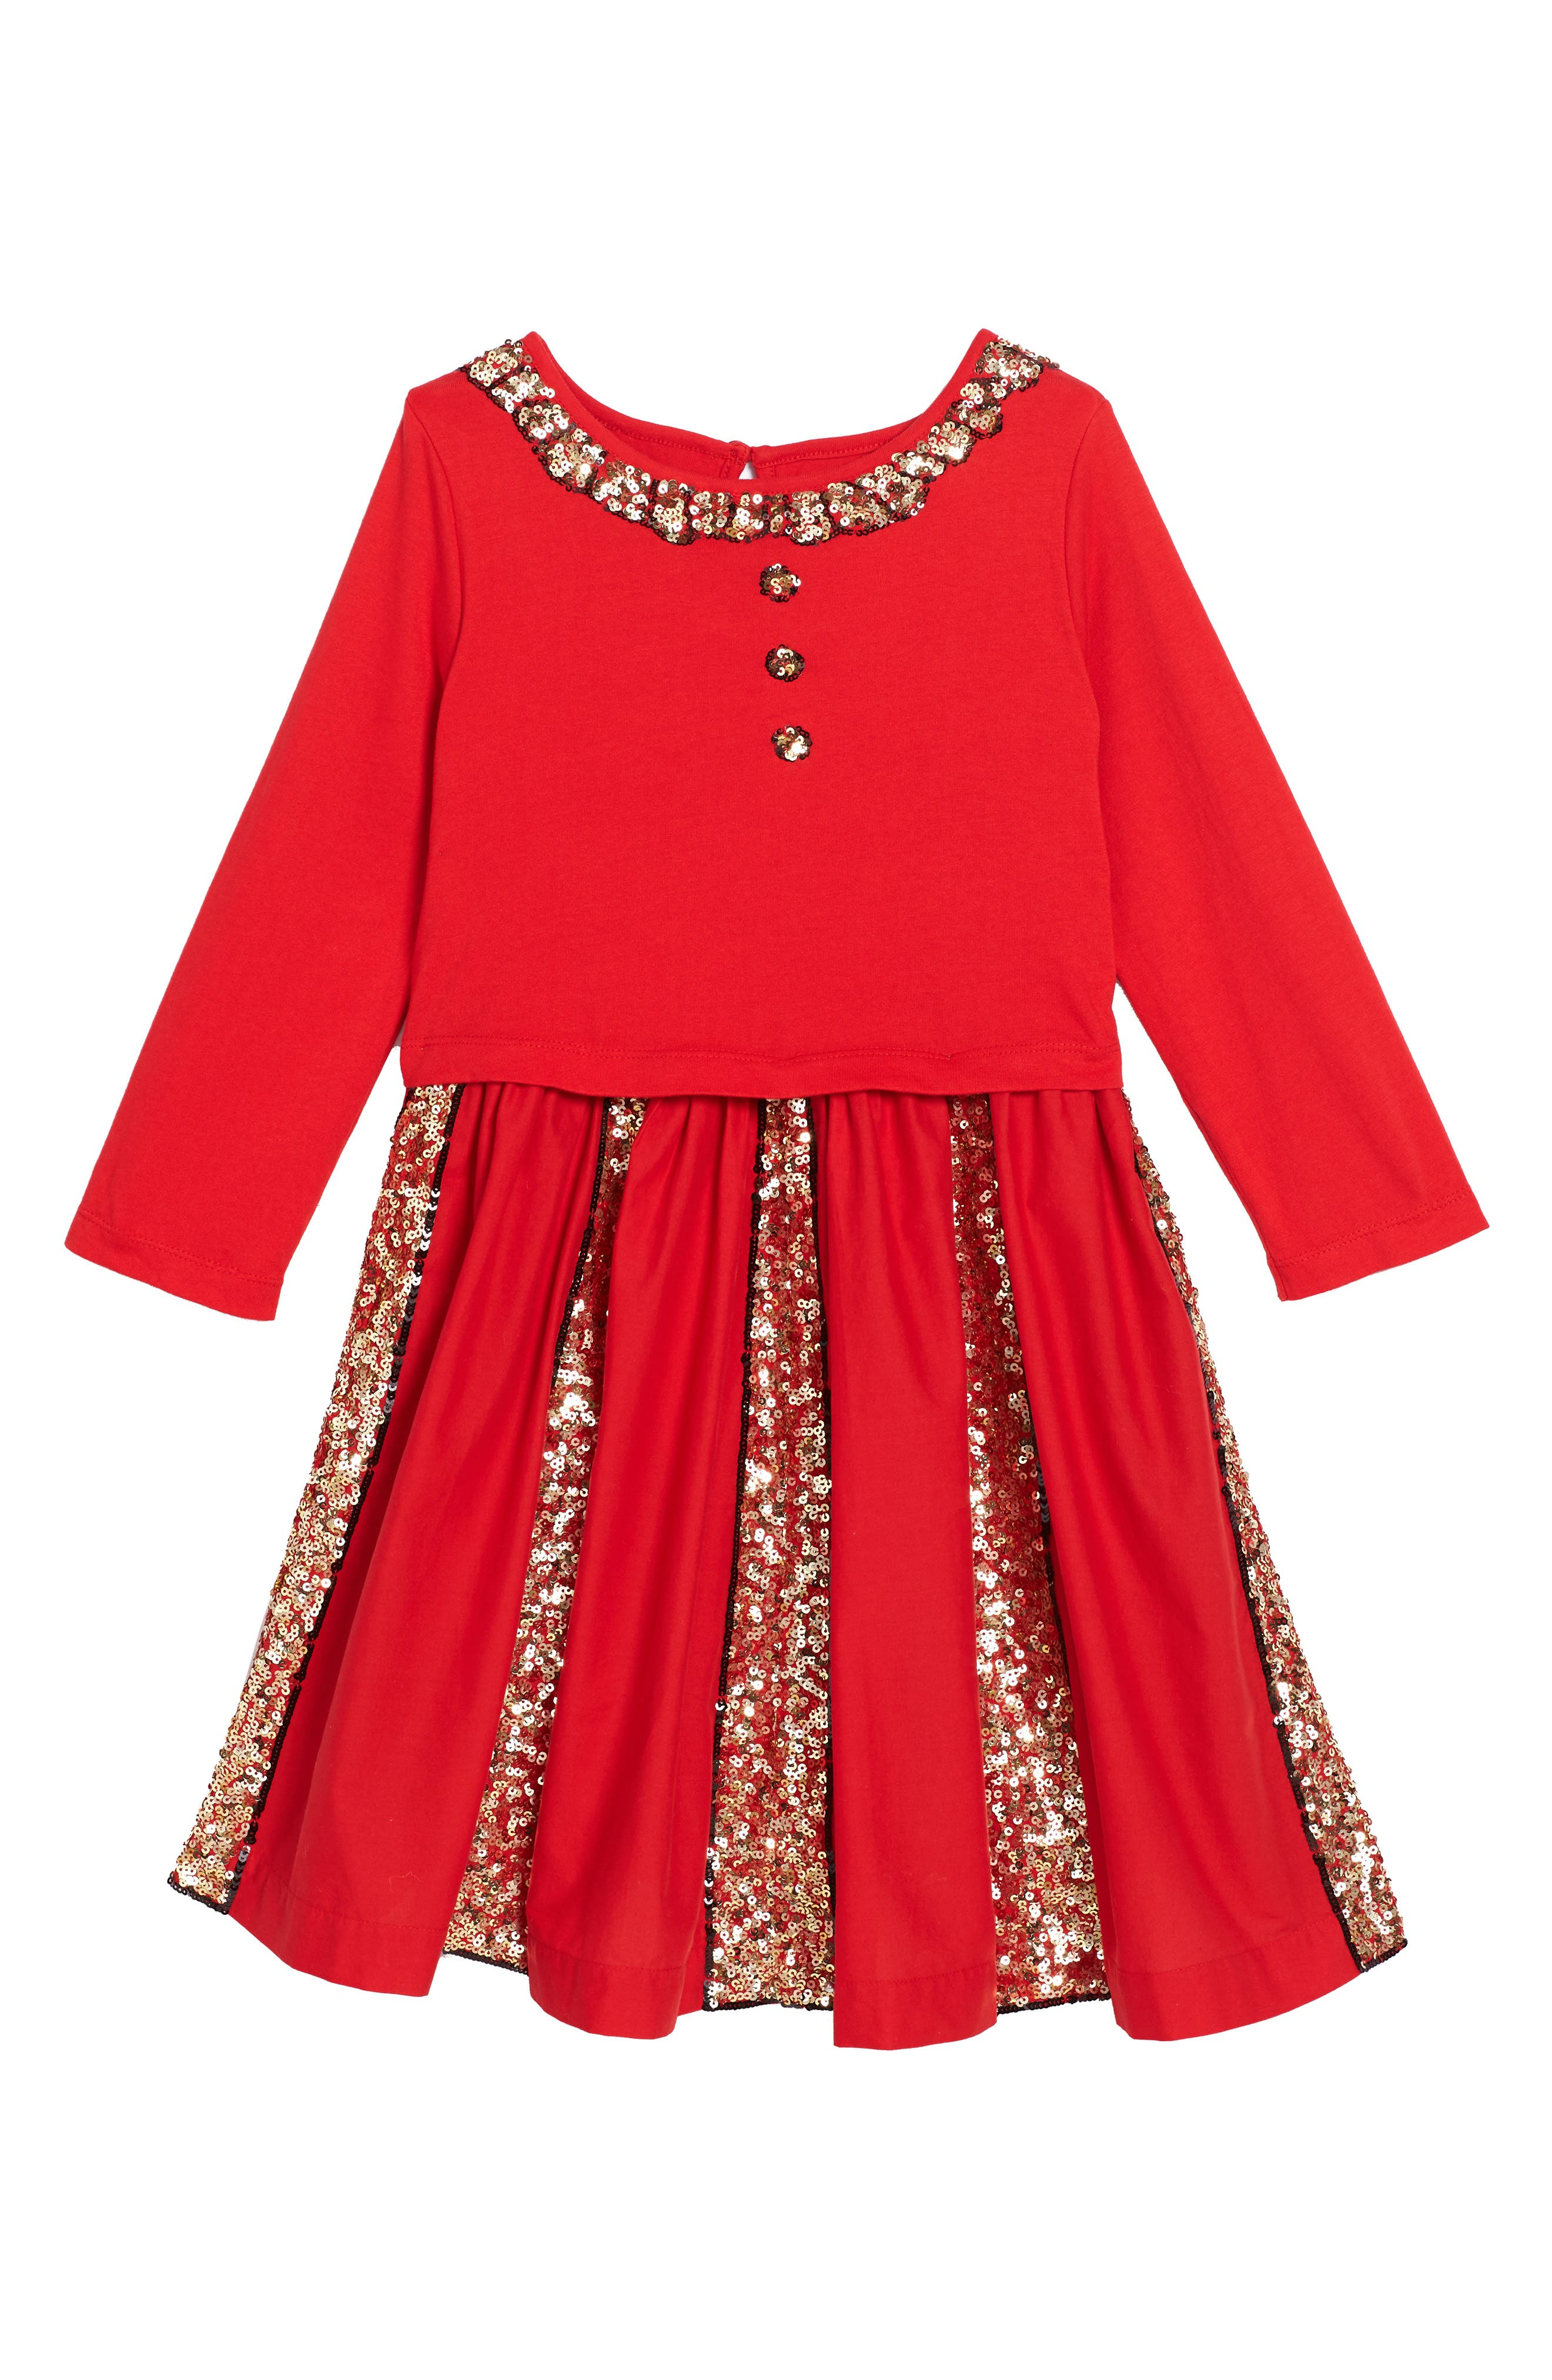 Sequin Skater Dress,                         Main,                         color, Ladybird Red Red